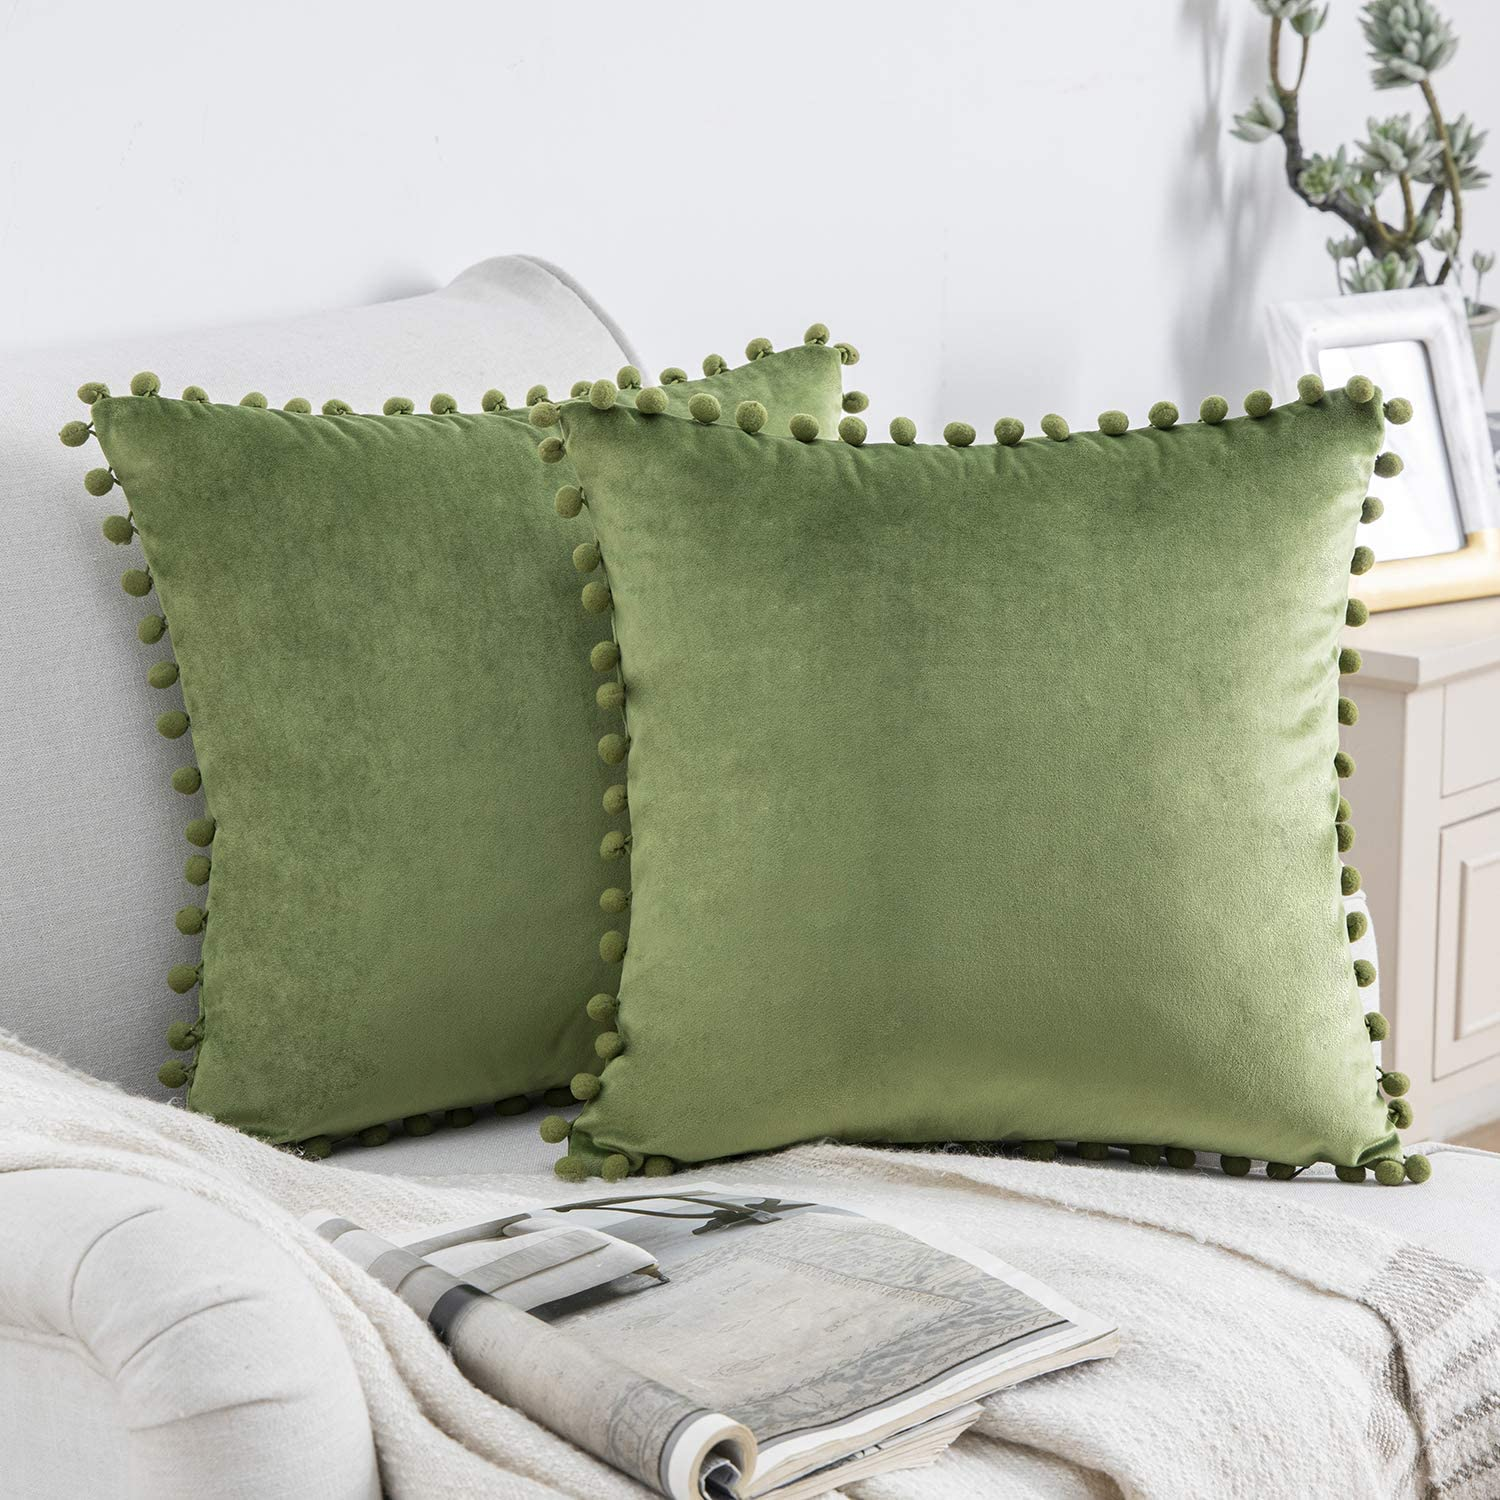 Phantoscope Pack of 2 Pom Poms Velvet Decorative Throw Pillow Covers Soft Solid Square Cushion Case Pillow Decor, Light Green, 18 x 18 inches 45 x 45 cm